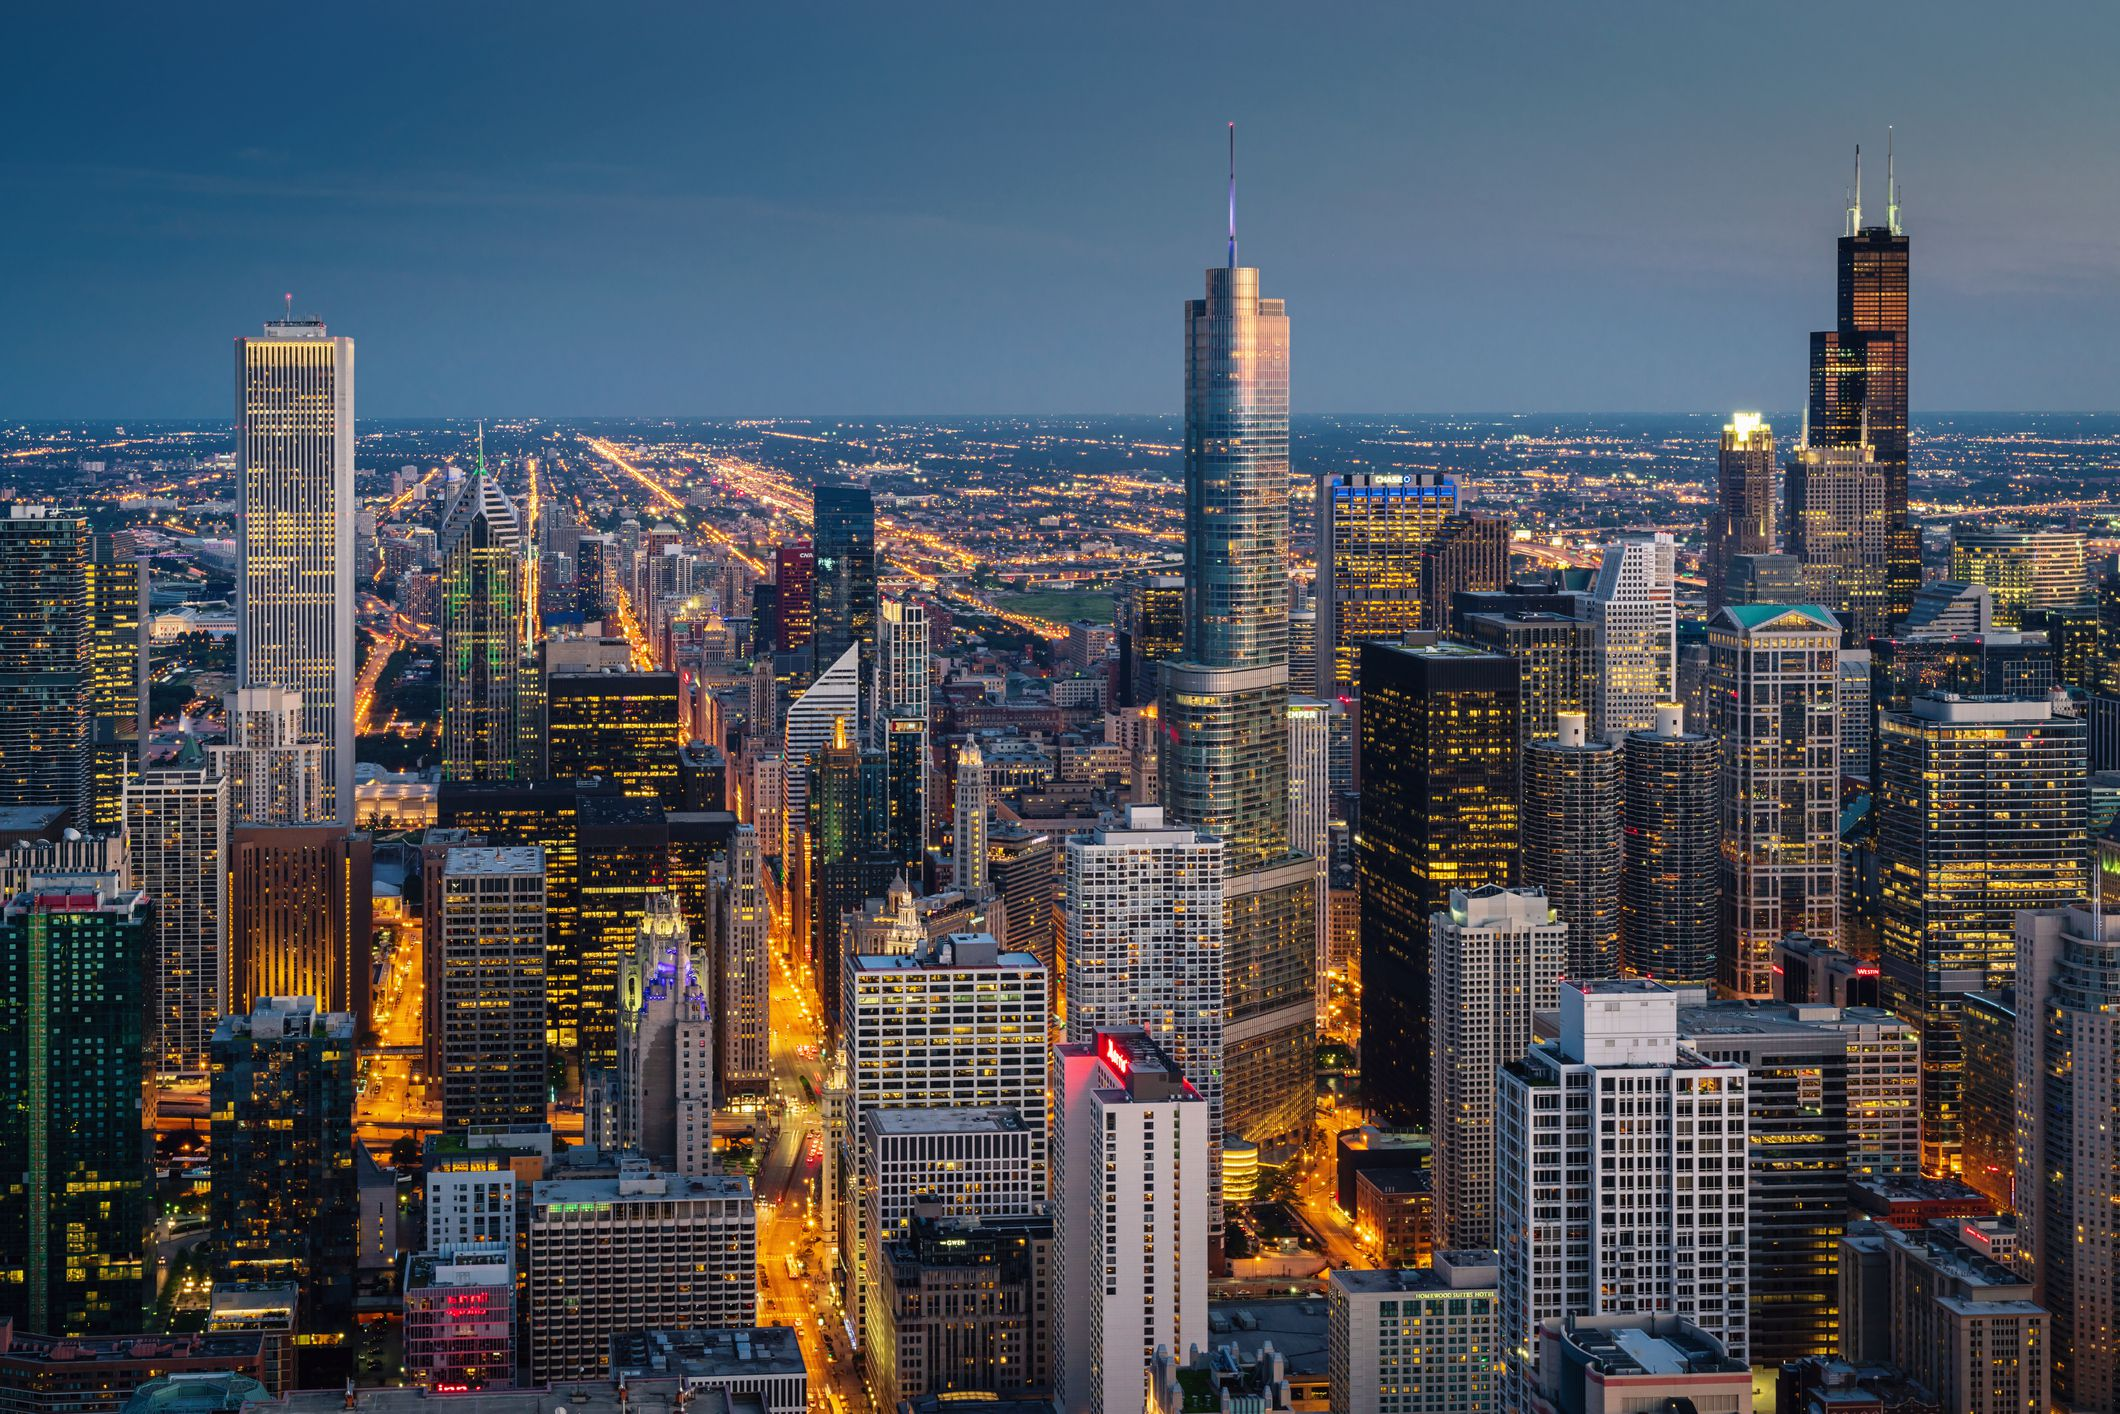 Where to Go for a Night Out in Chicago